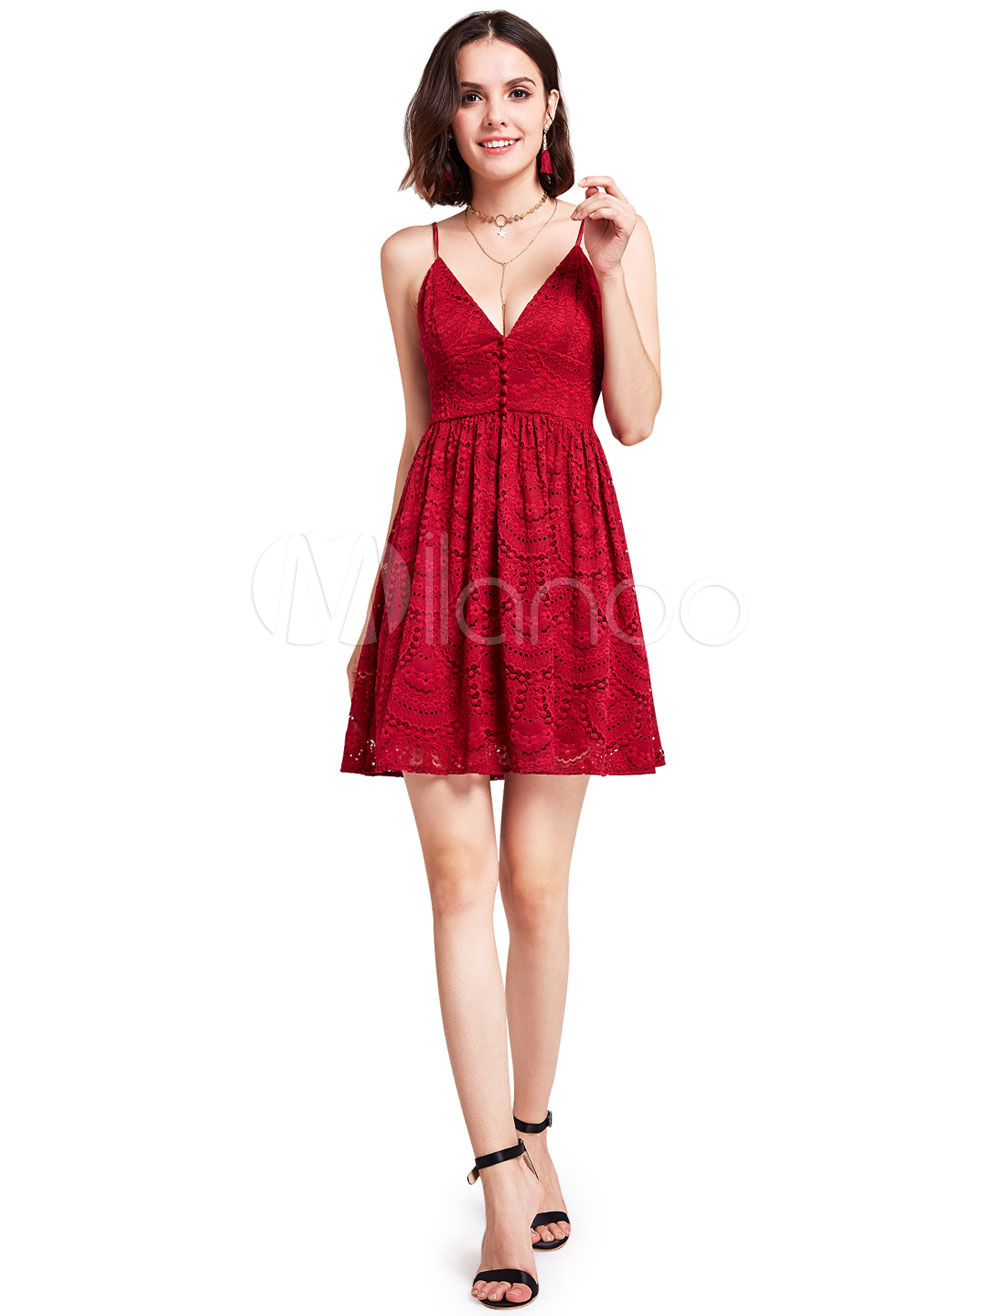 Buy Burgundy Party Dresses Lace V Neck Sleeveless Backless Cocktail Dresses A Line Straps Short Occasion Dresses for $79.19 in Milanoo store